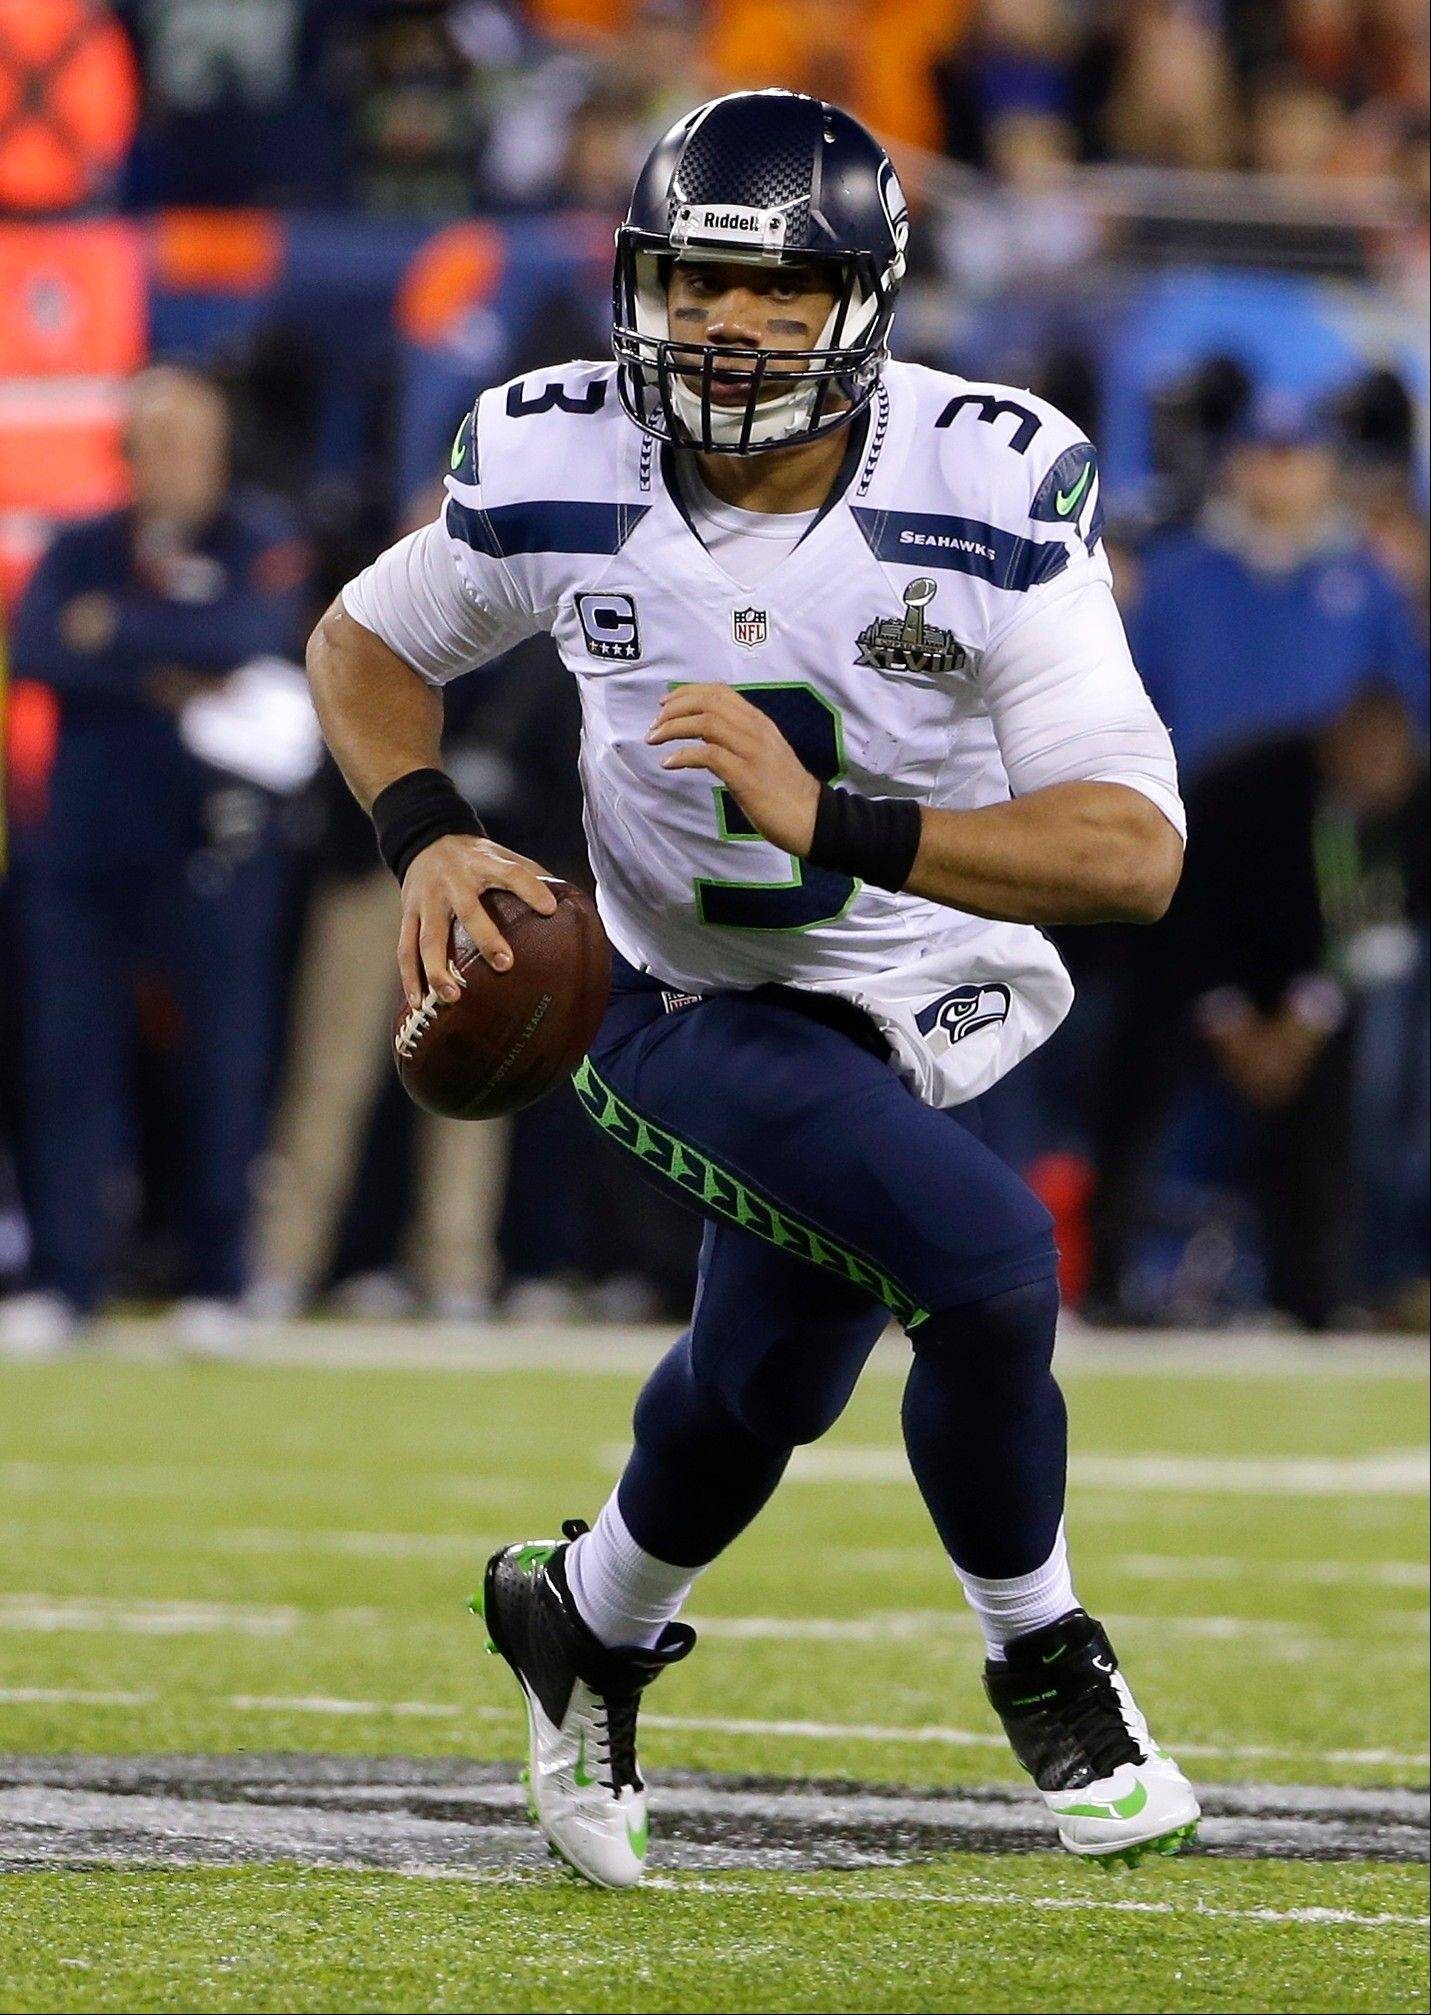 The brilliant performance of Seahawks quarterback Russell Wilson in Super Bowl XLVIII on Sunday is unquestionably the most overlooked aspect of the beating Seattle put on Denver, according to Barry Rozner, who points out: the scary part for the NFC is Seattle was the second-youngest Super Bowl-winning team ever and the Seahawks don�t have to pay Wilson for two more years.